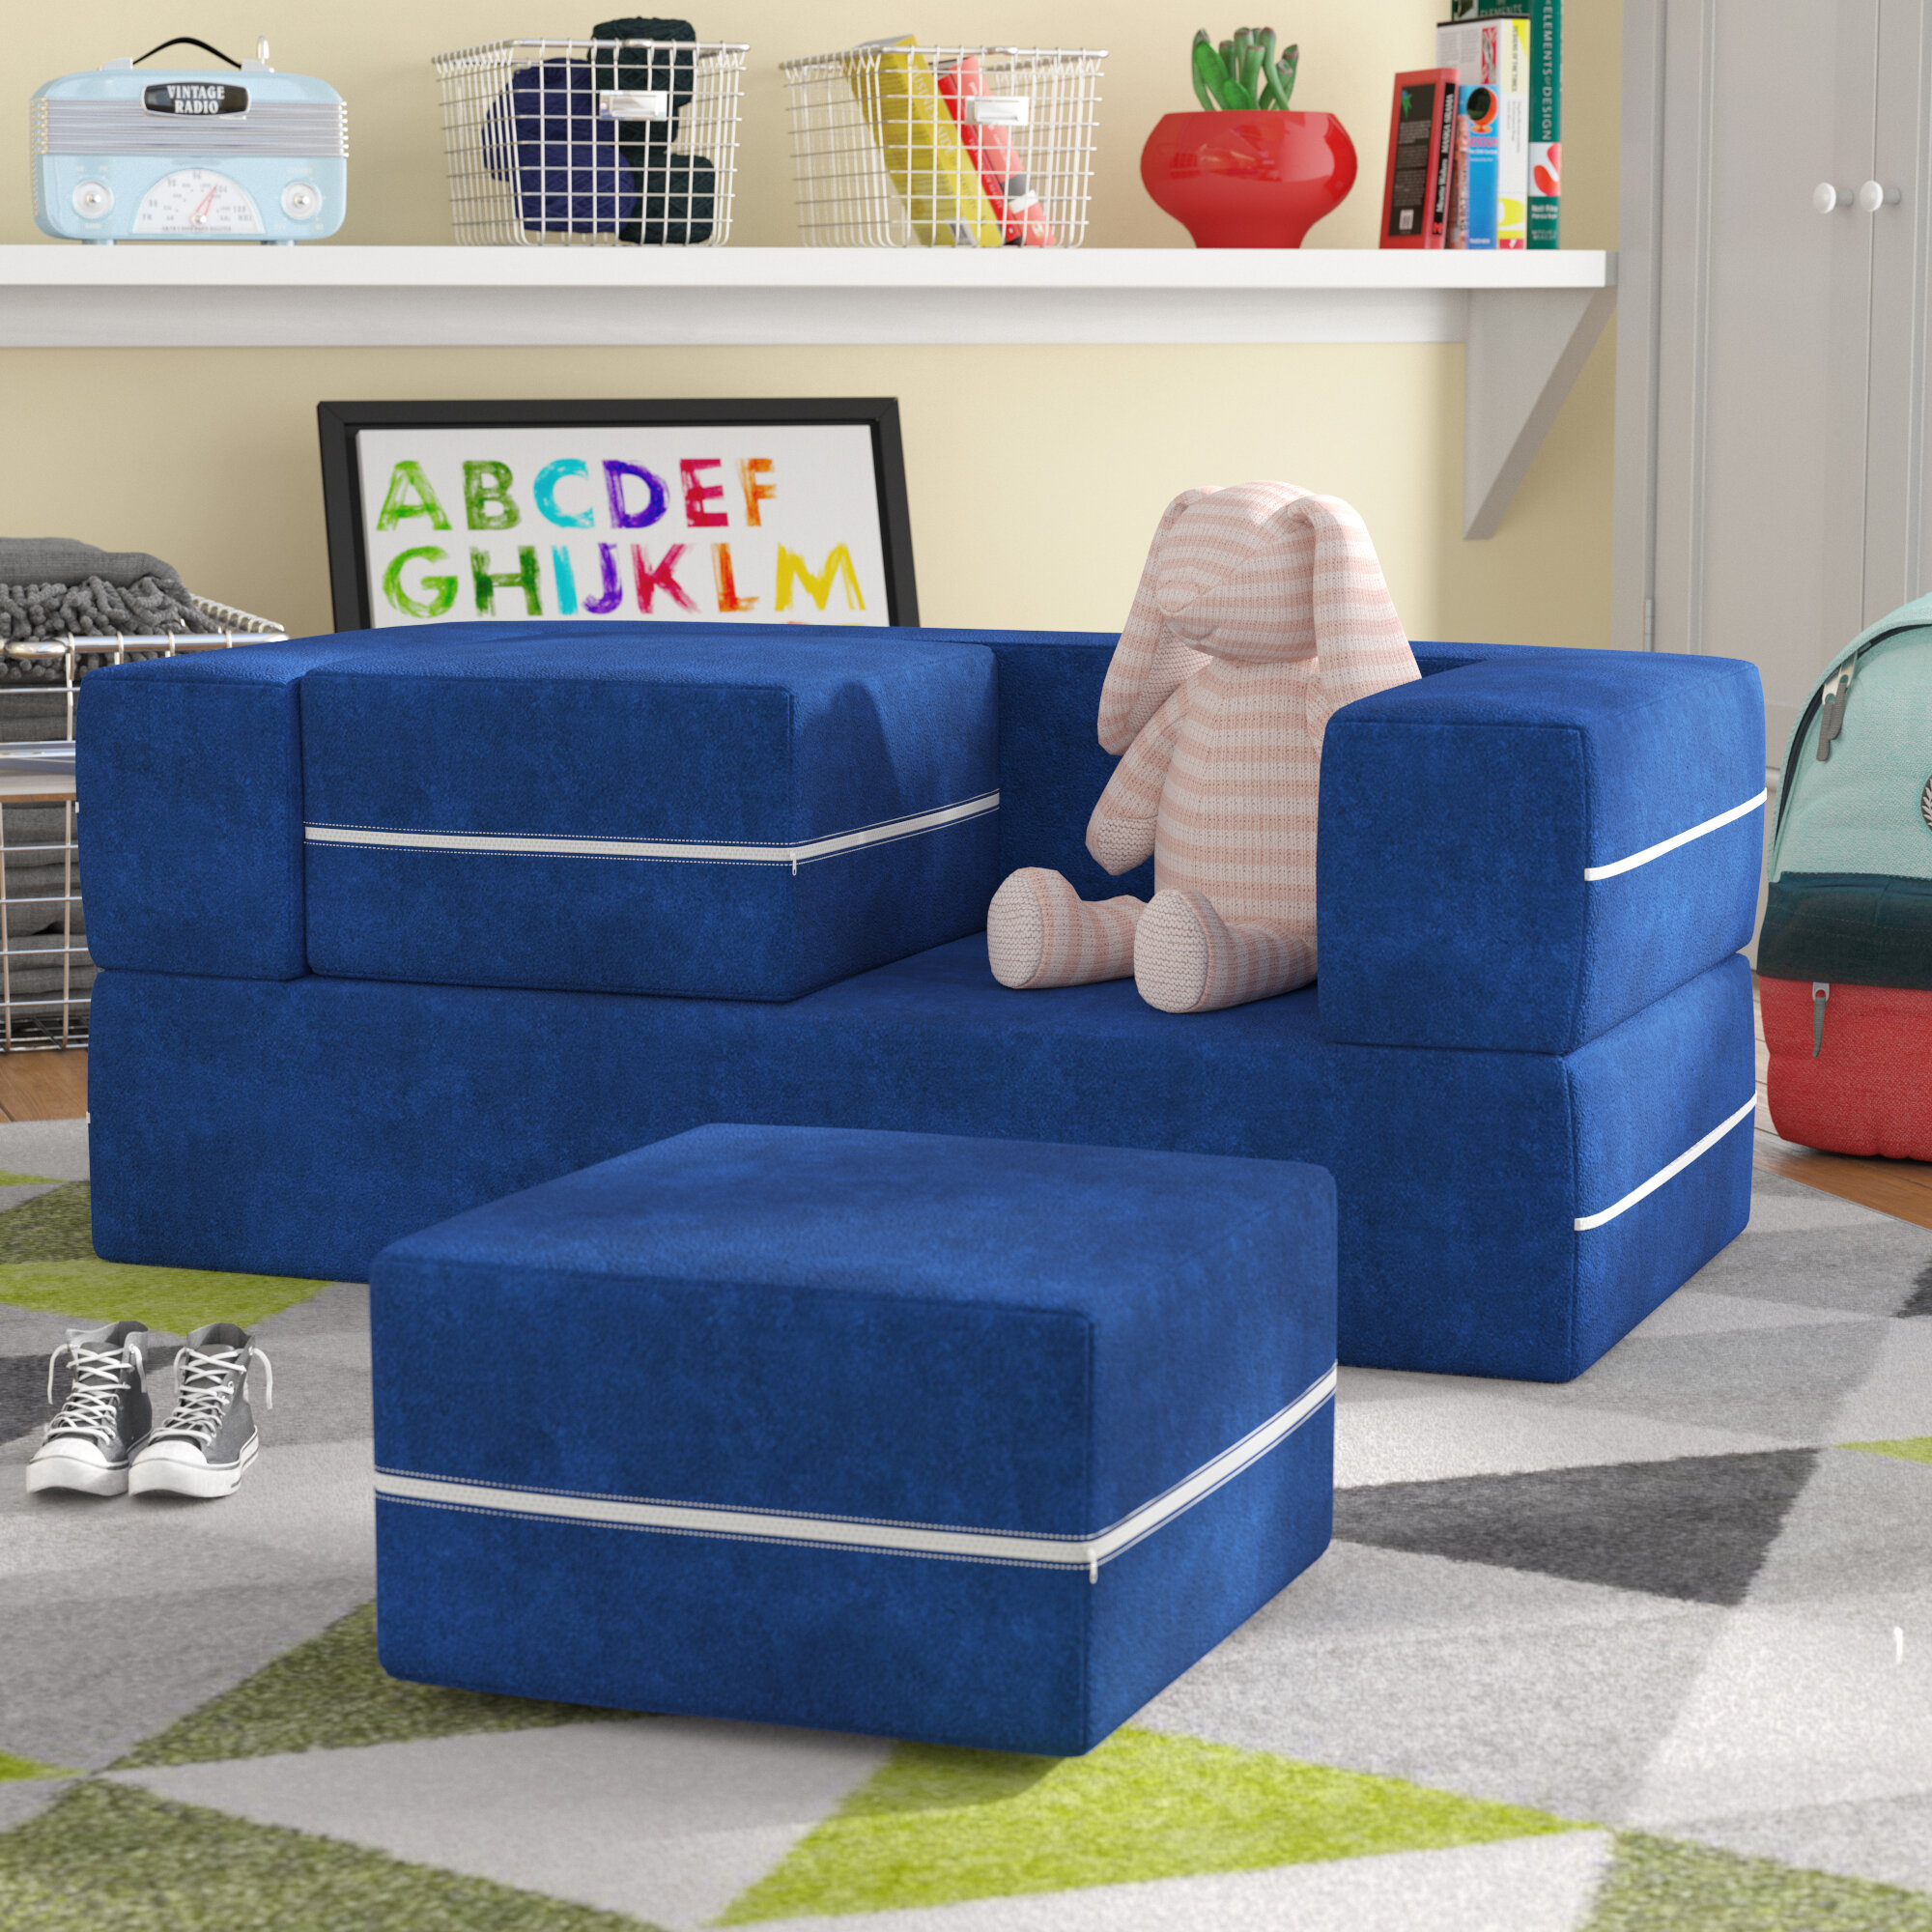 Remarkable Mack Milo Mendonca Modular Kids Sofa And Ottoman Reviews Pdpeps Interior Chair Design Pdpepsorg